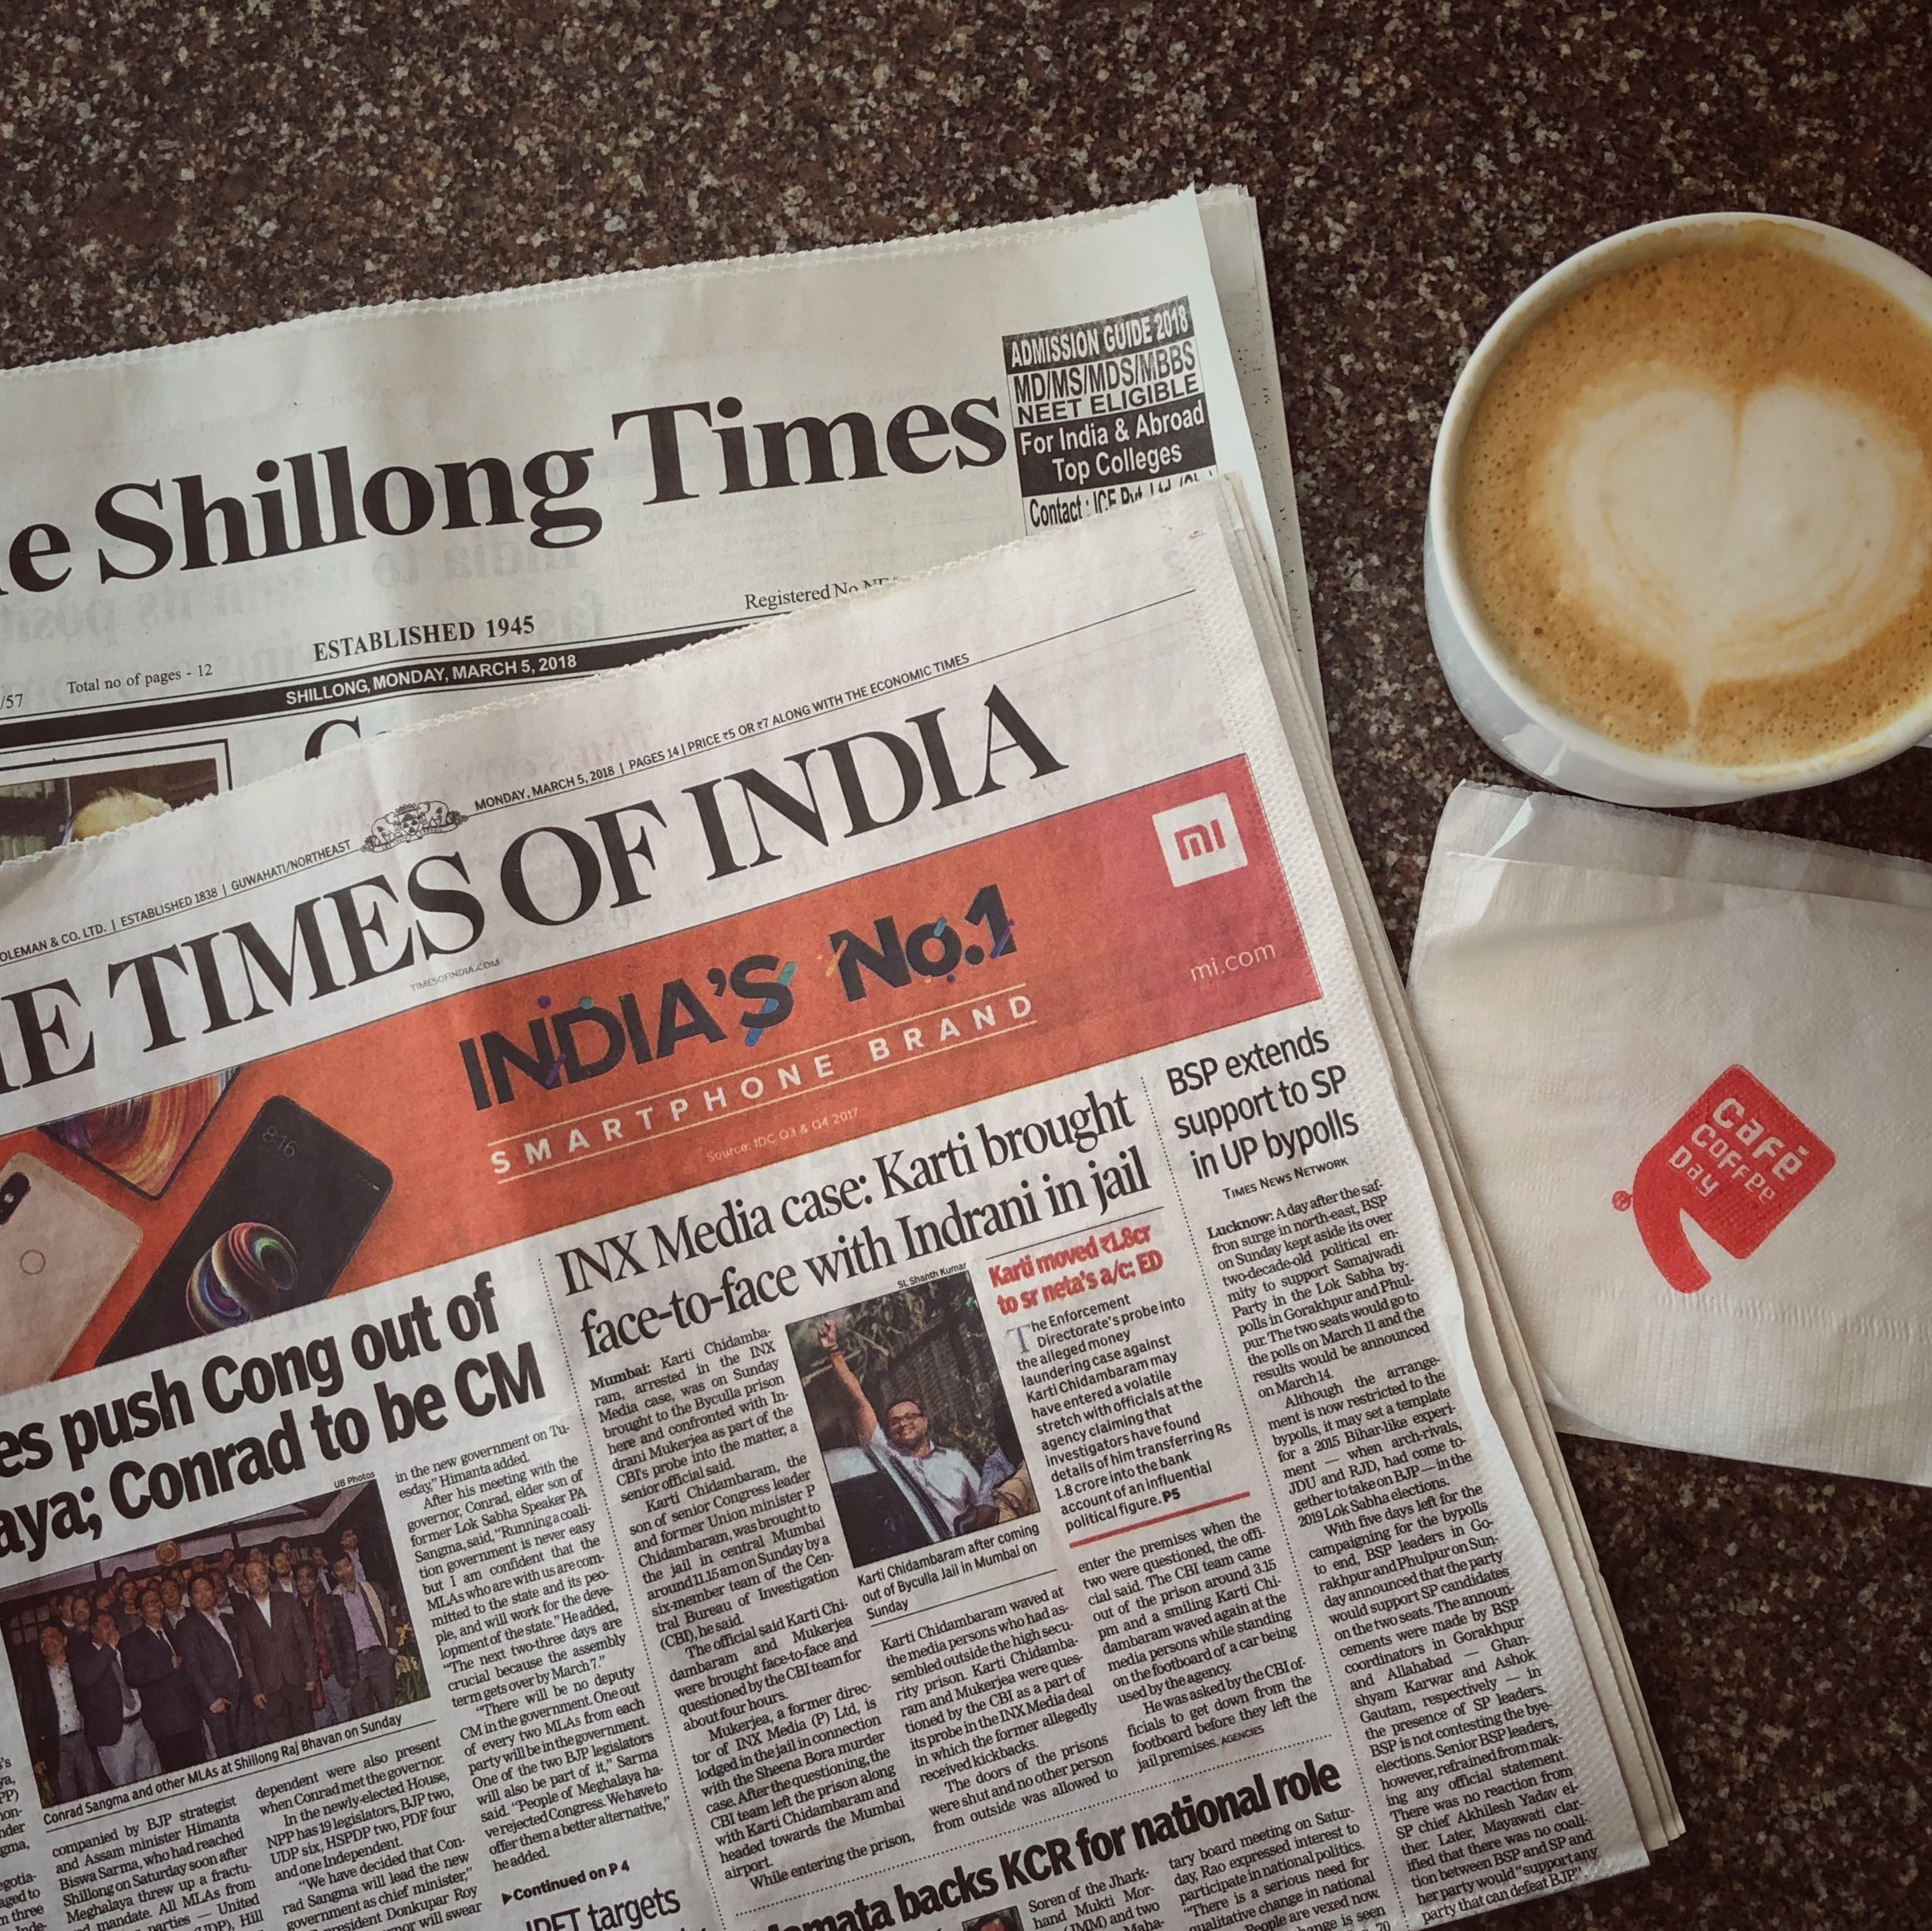 My morning routine in Shillong - great coffee